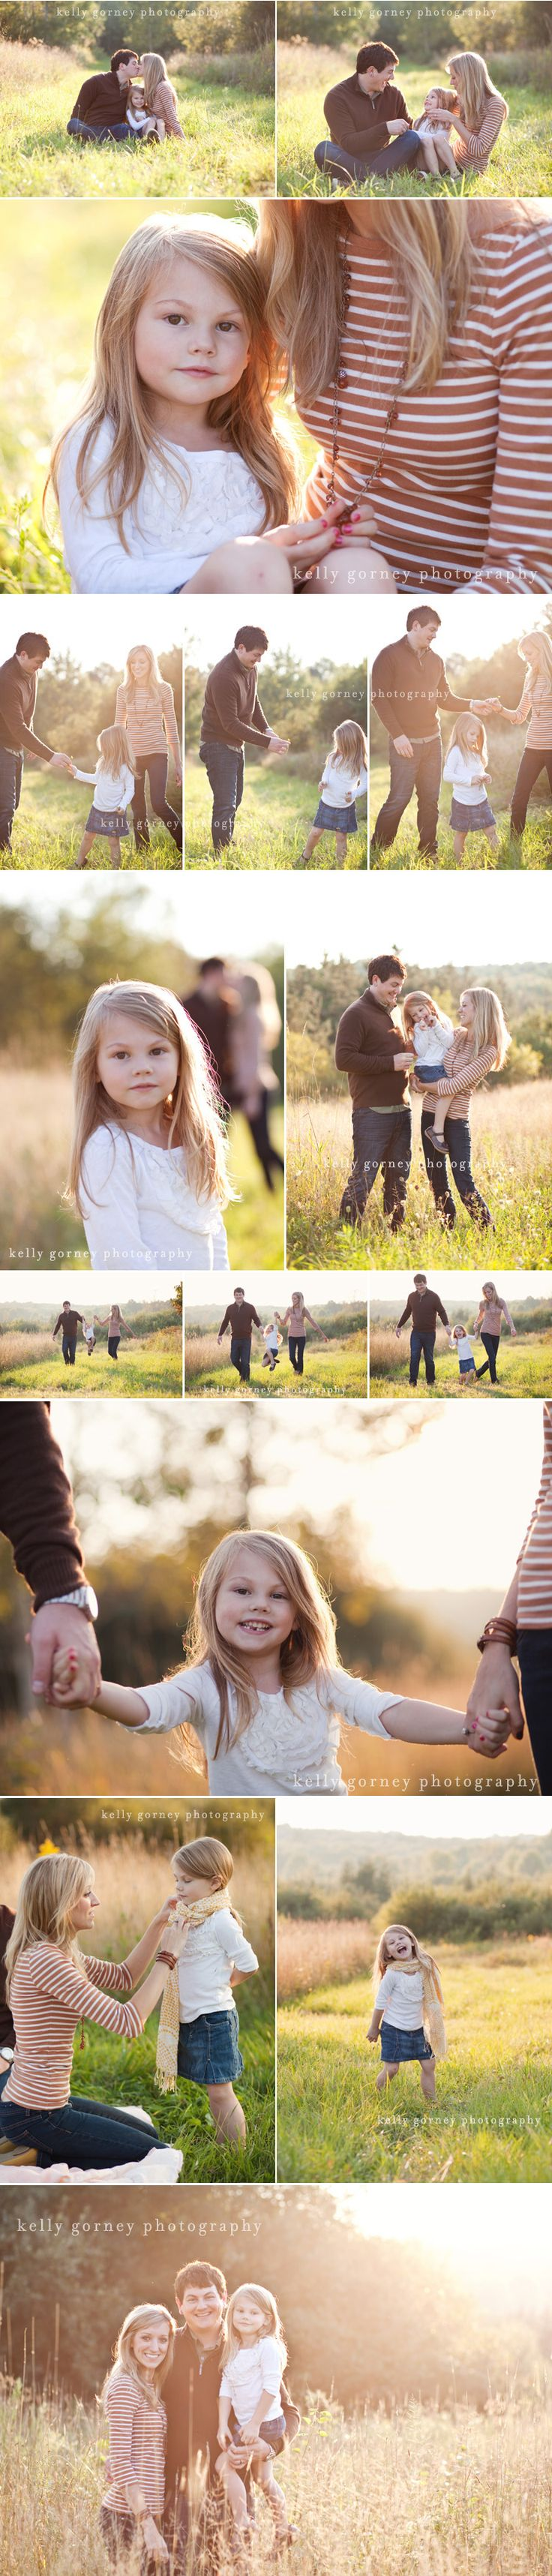 family photo shoot. LOVE all of these.